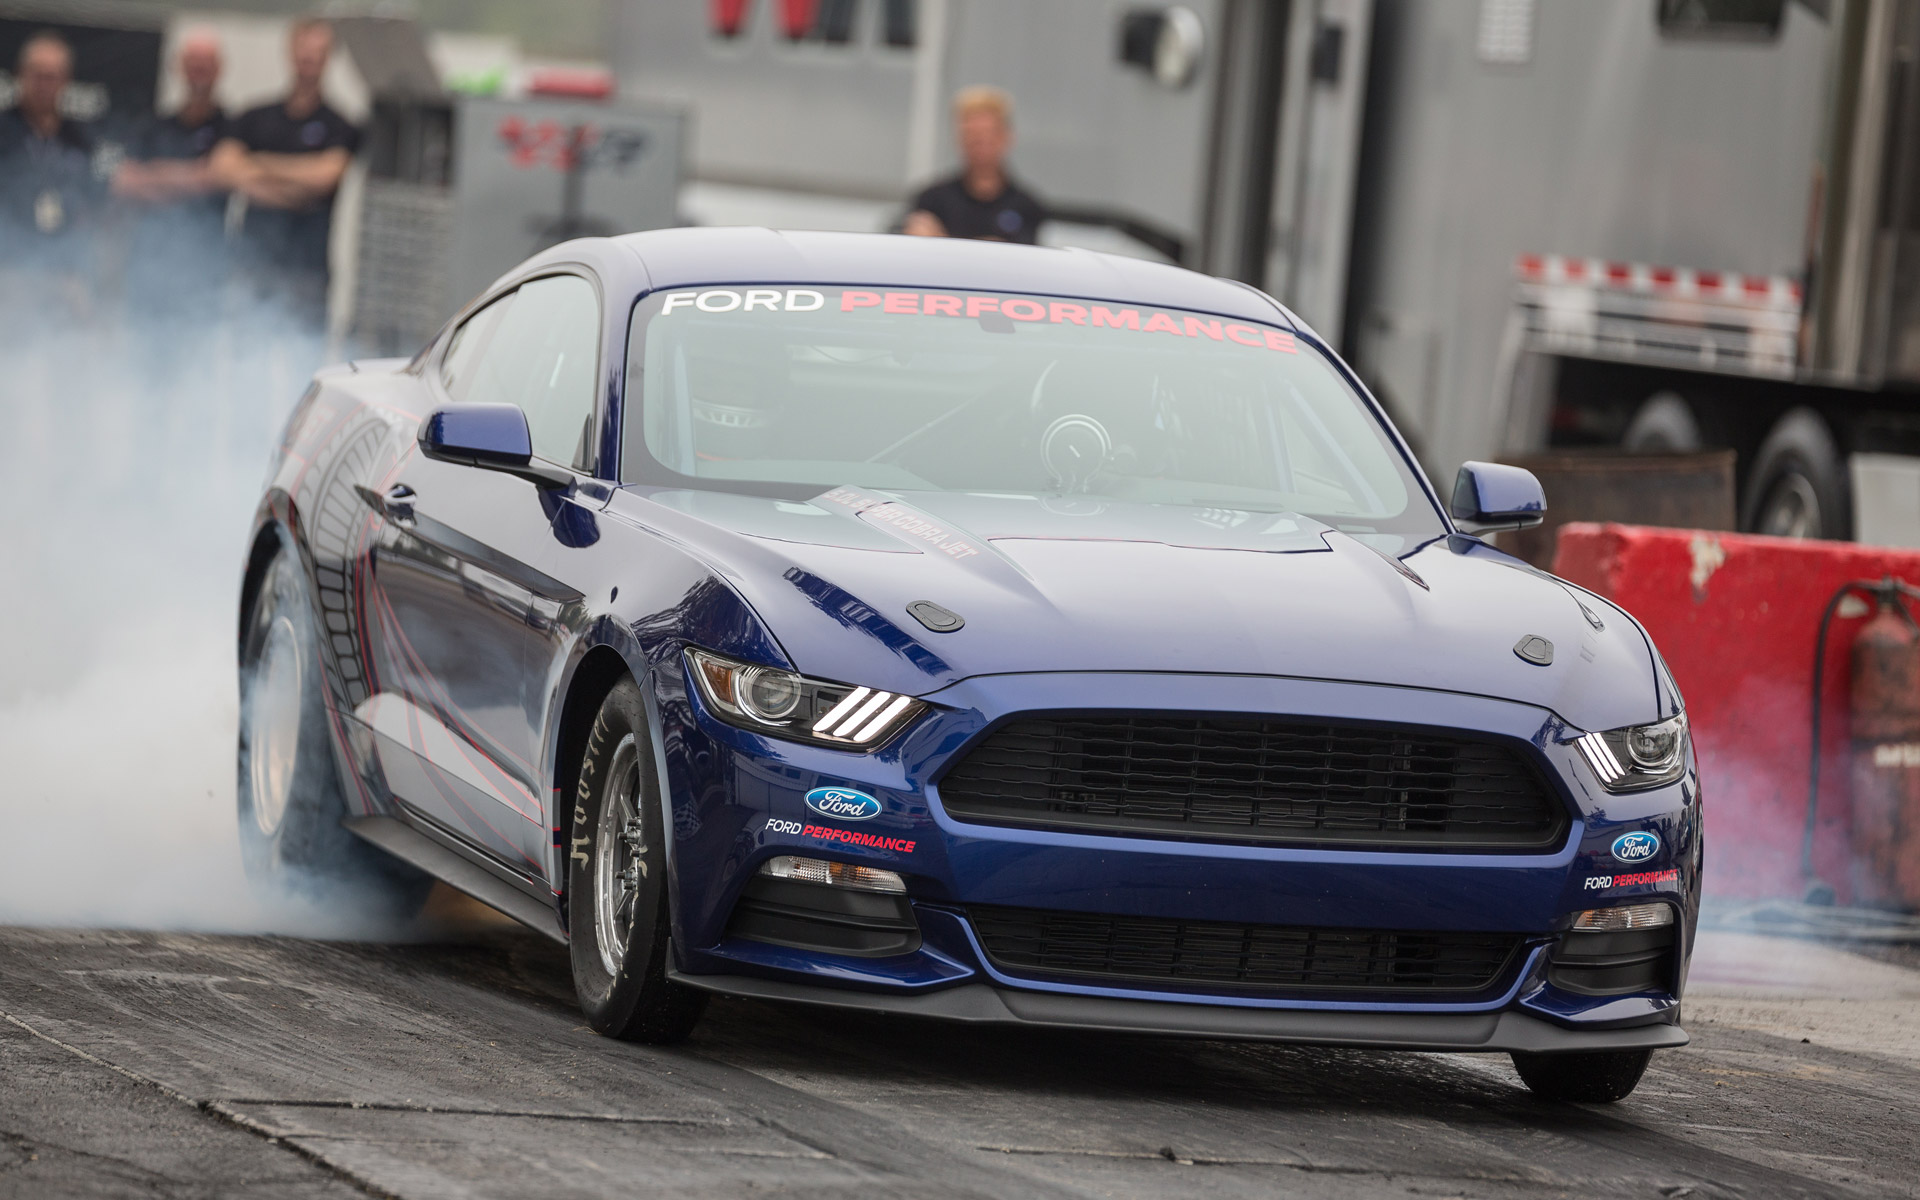 2016 Ford Mustang Cobra Jet Revealed Runs 8 0 Second Quarter Mile